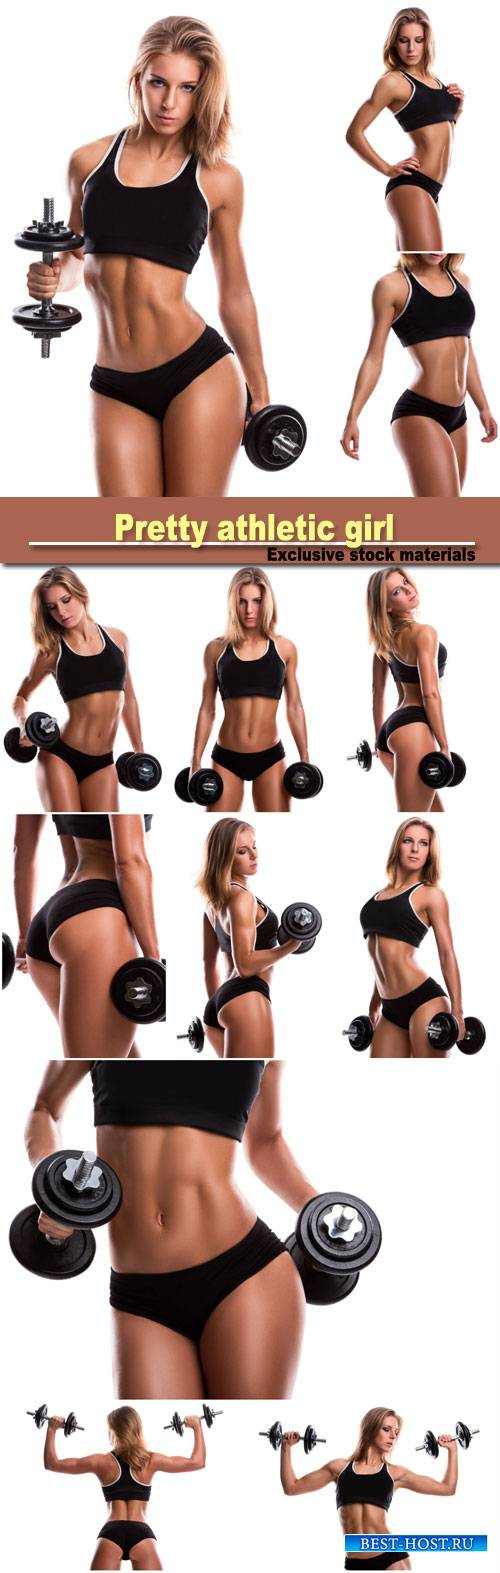 Pretty athletic girl with dumbbells